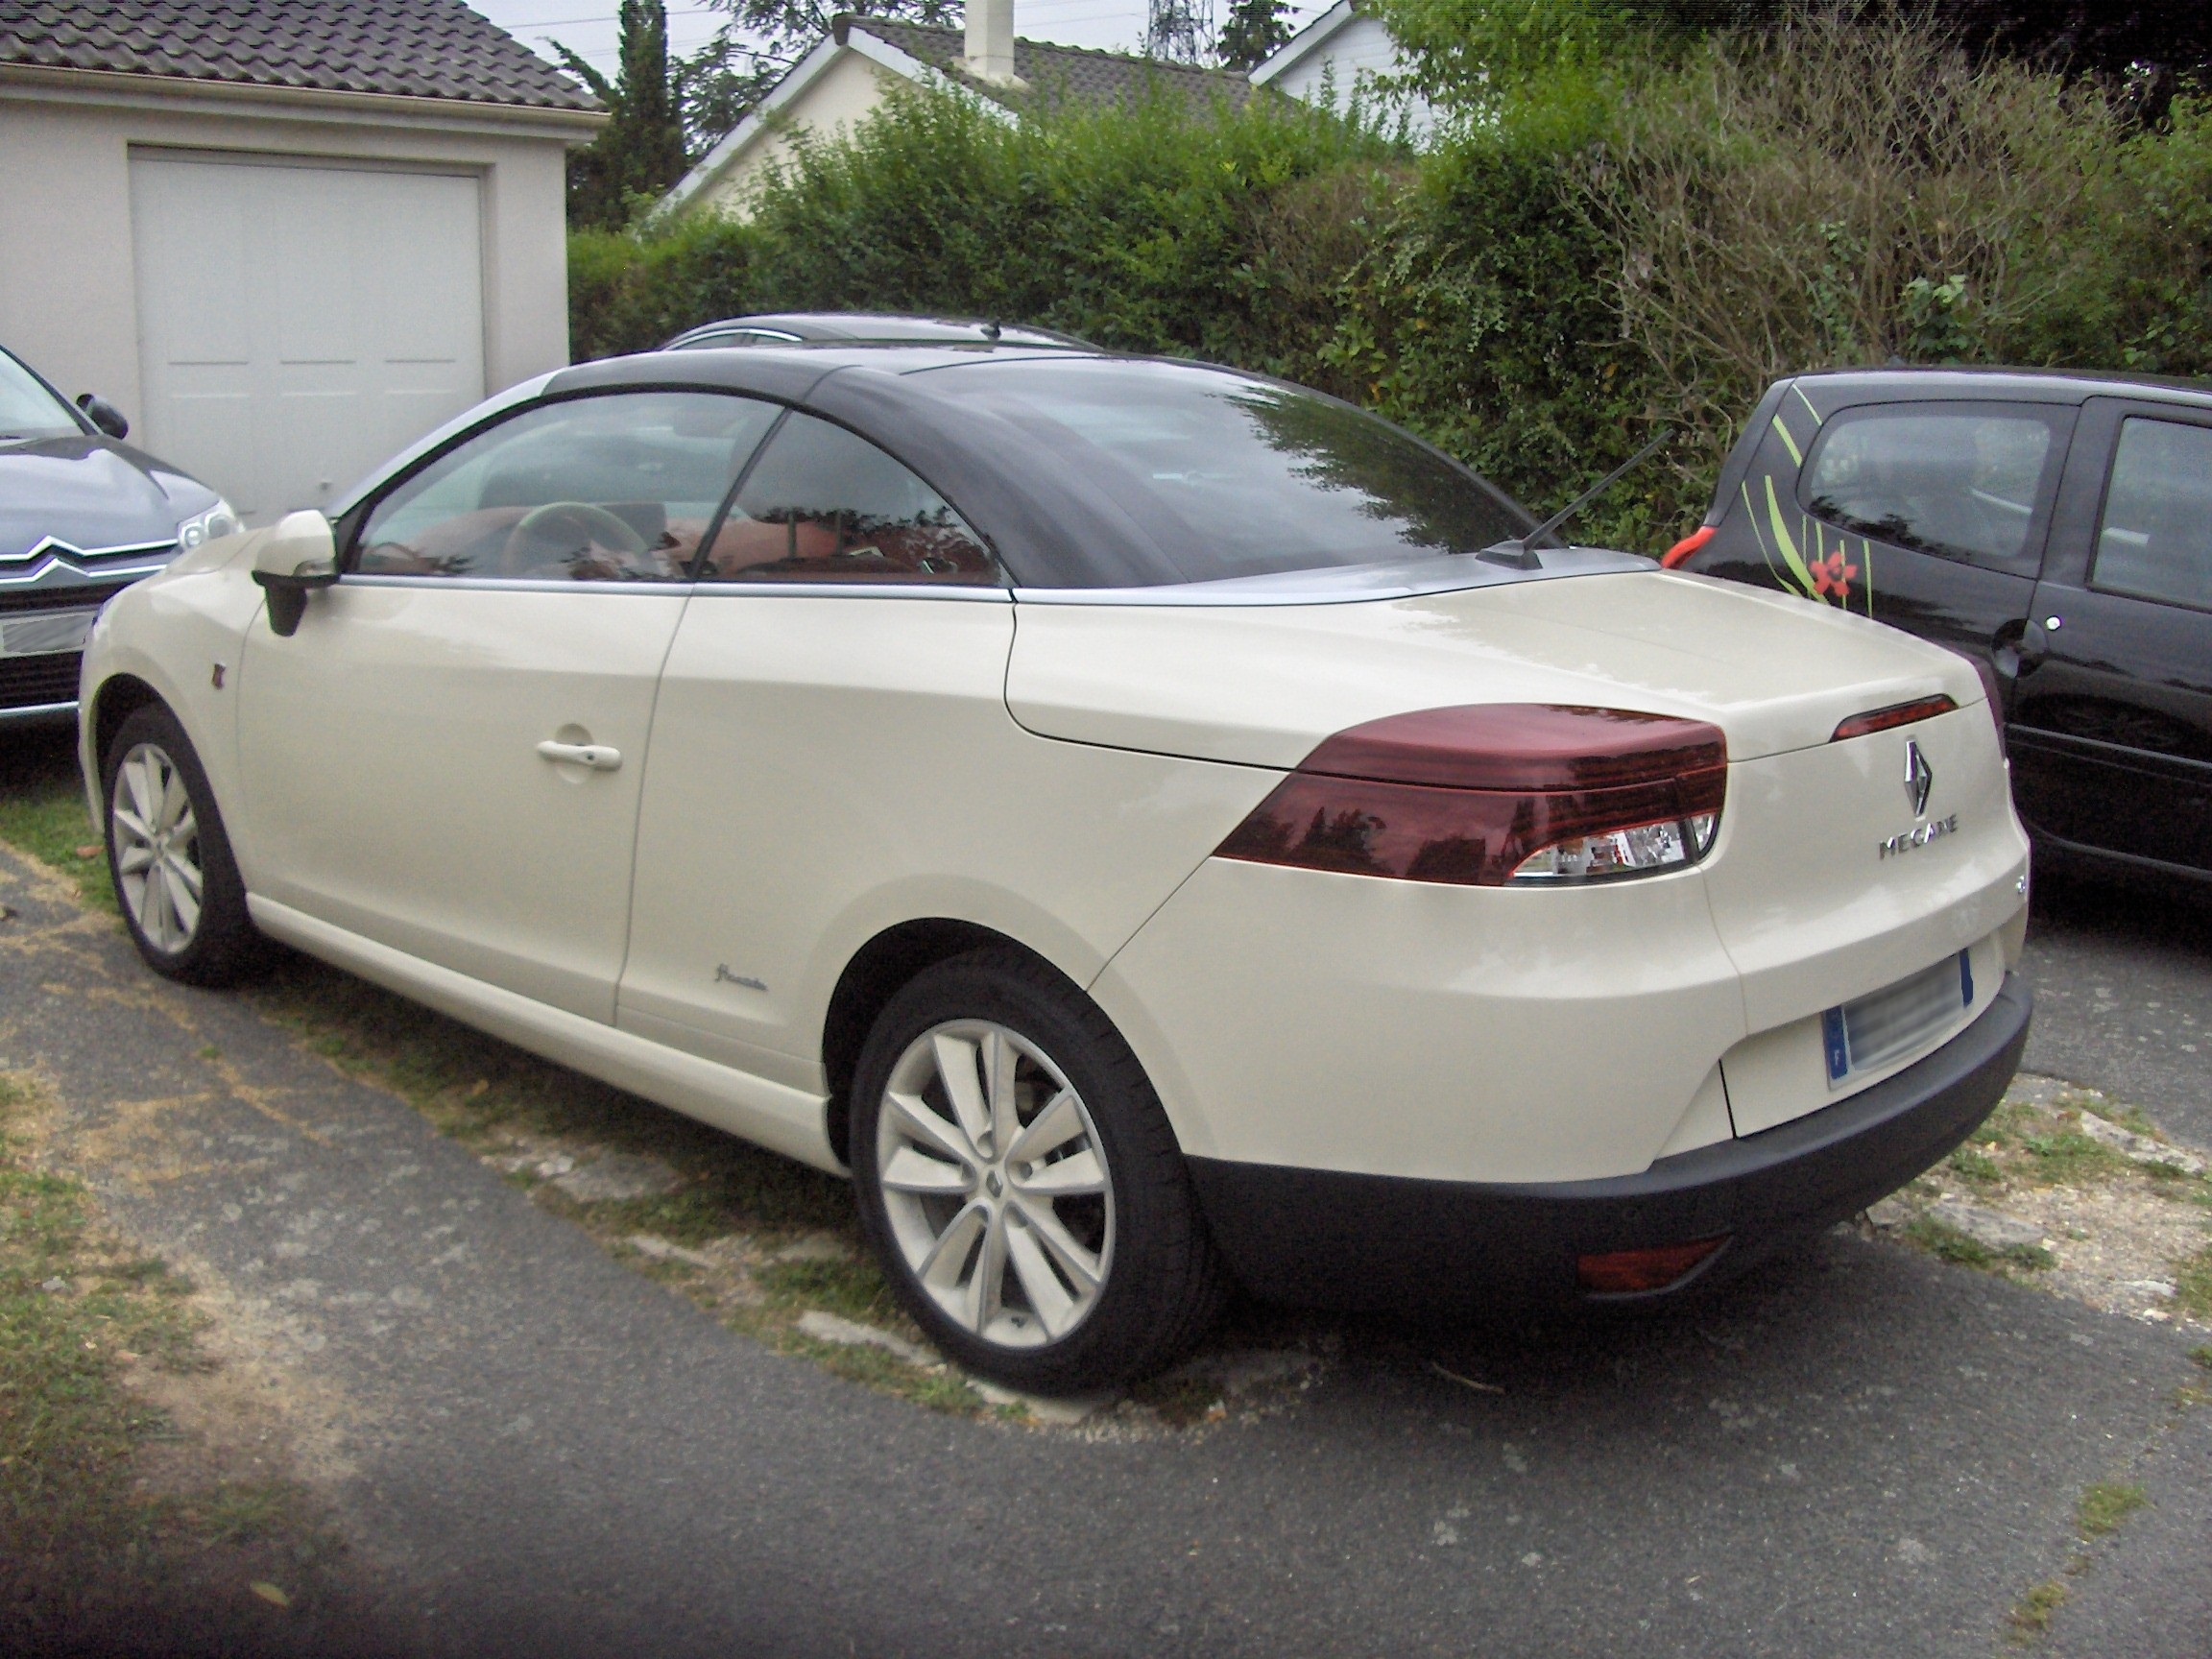 Pictures of renault megane iii cc 2011